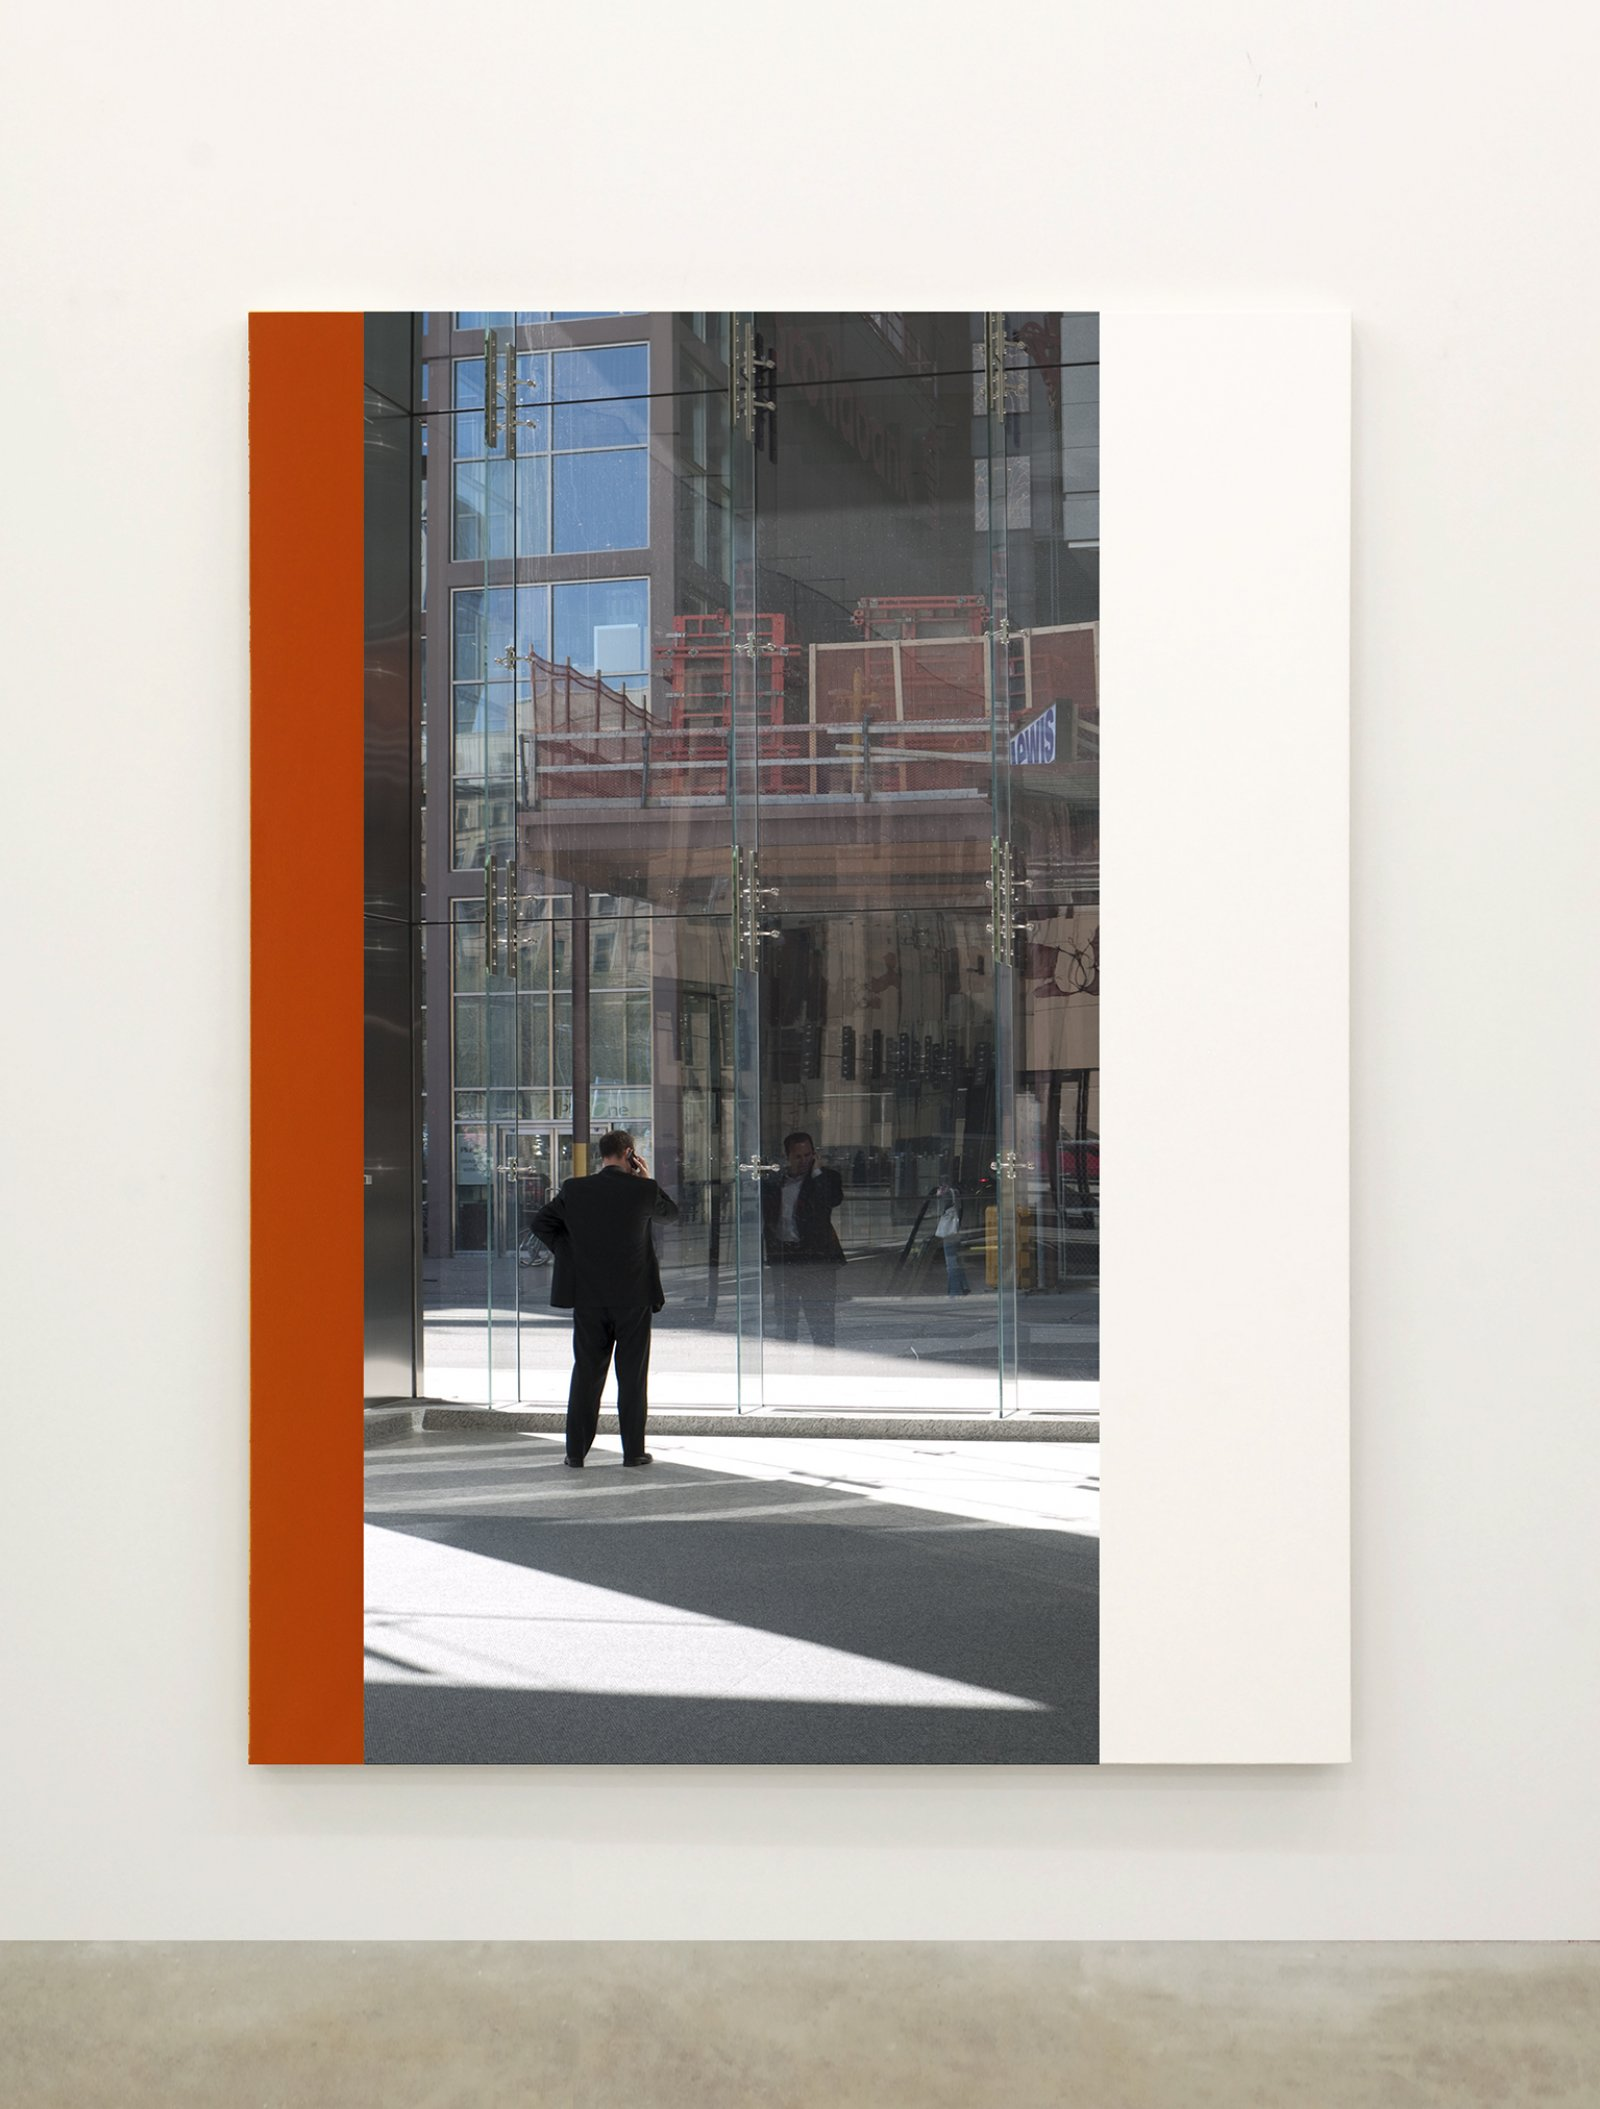 Ian Wallace,Abstract Painting III(The Financial District), 2010,12 photolaminate with acrylic on canvas panels, each 96 x 72 in. (244 x 183 cm)